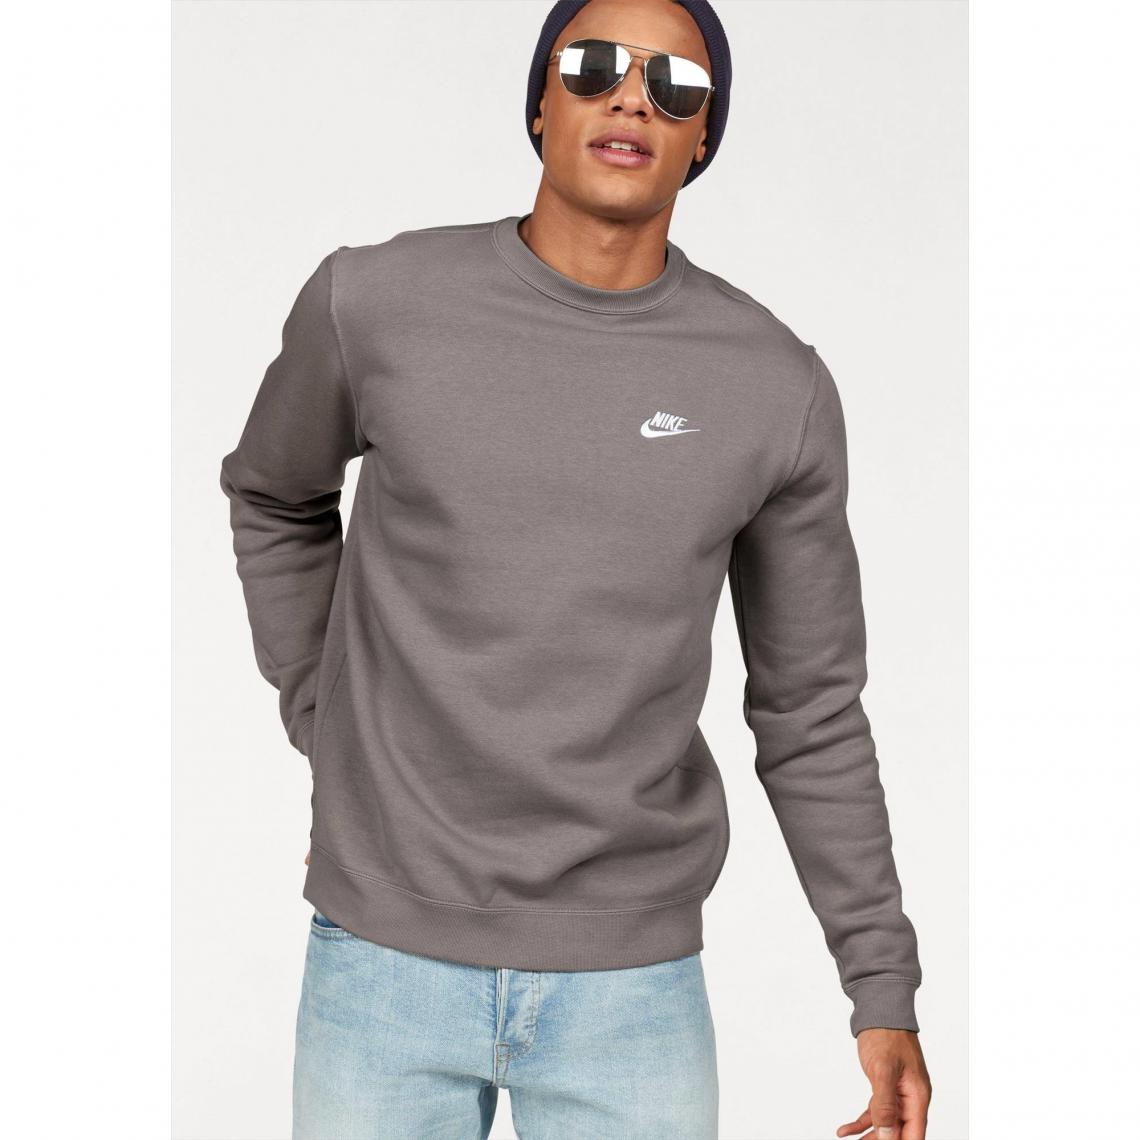 Col Marron Rond 3suisses Homme Nike Sweat dw6xqSRd